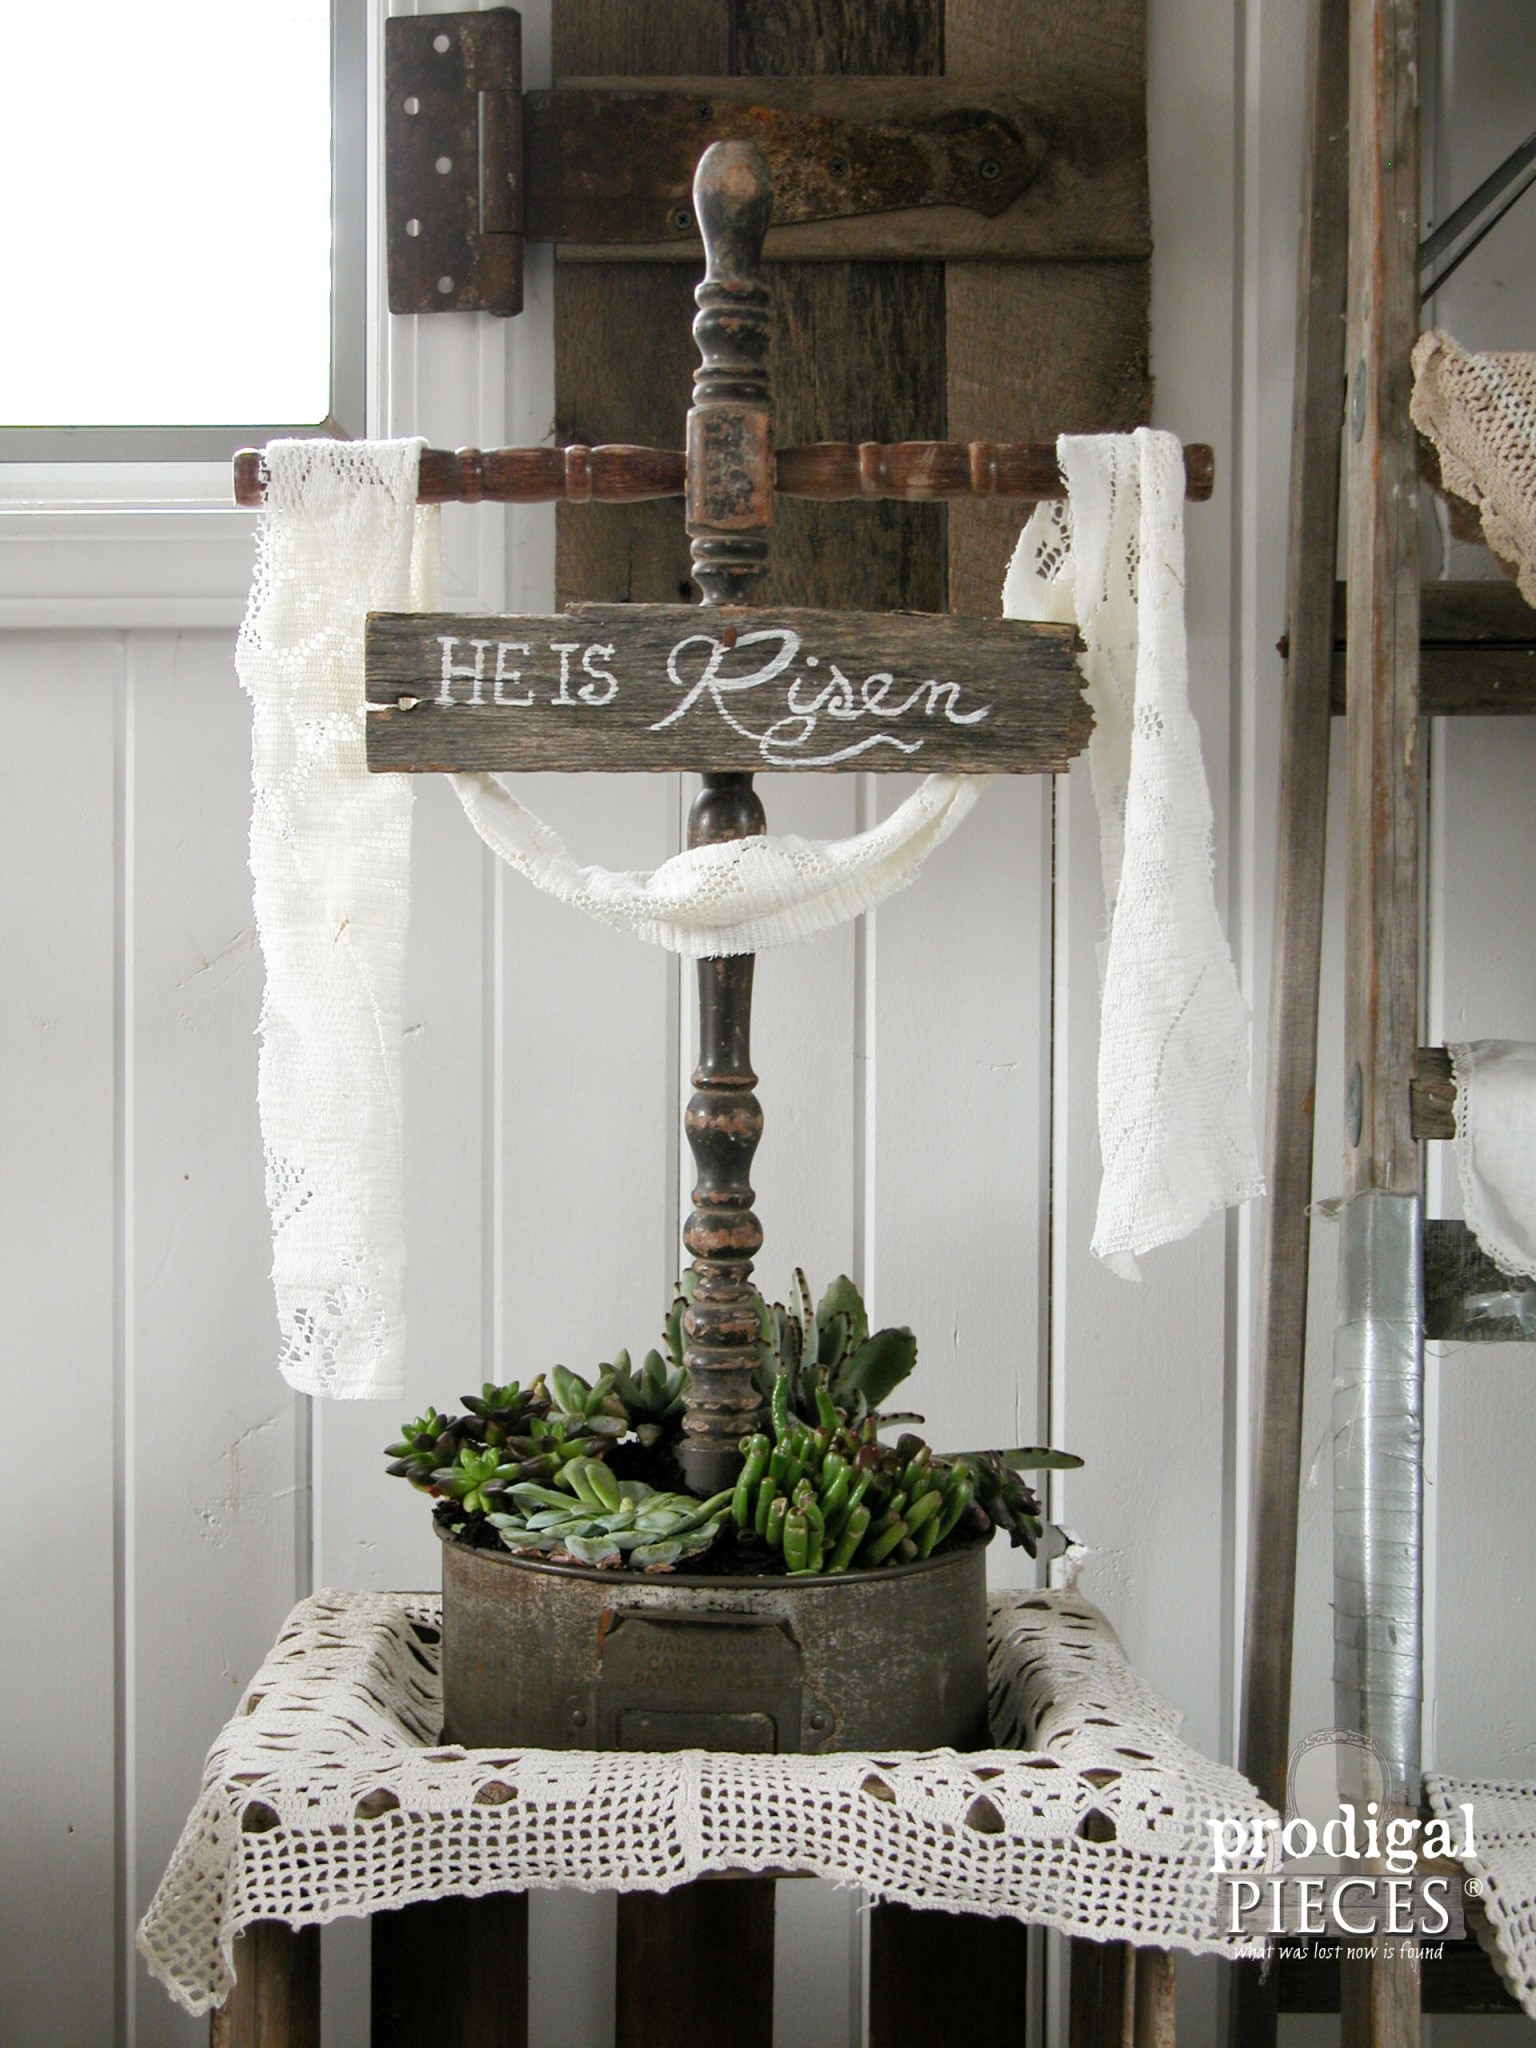 Repurposed Easter Cross from Salvaged Junk by Prodigal Pieces | www.prodigalpieces.com